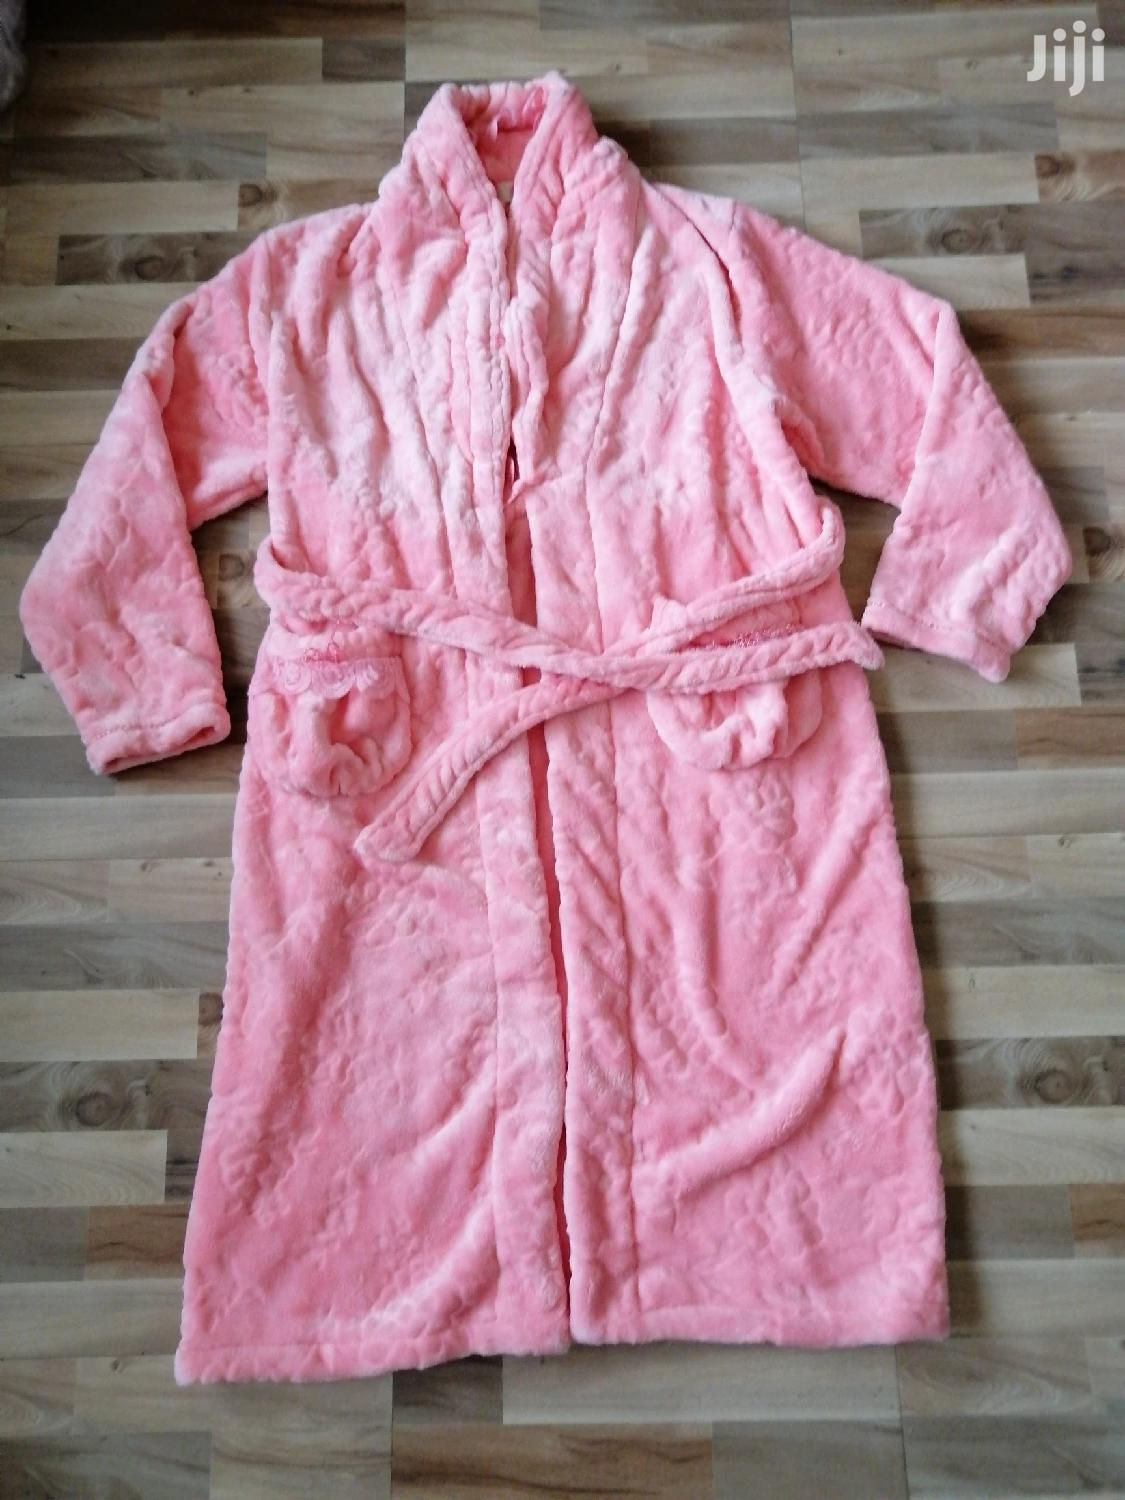 Morning And Evening Robe | Clothing Accessories for sale in Lartebiokorshie, Greater Accra, Ghana